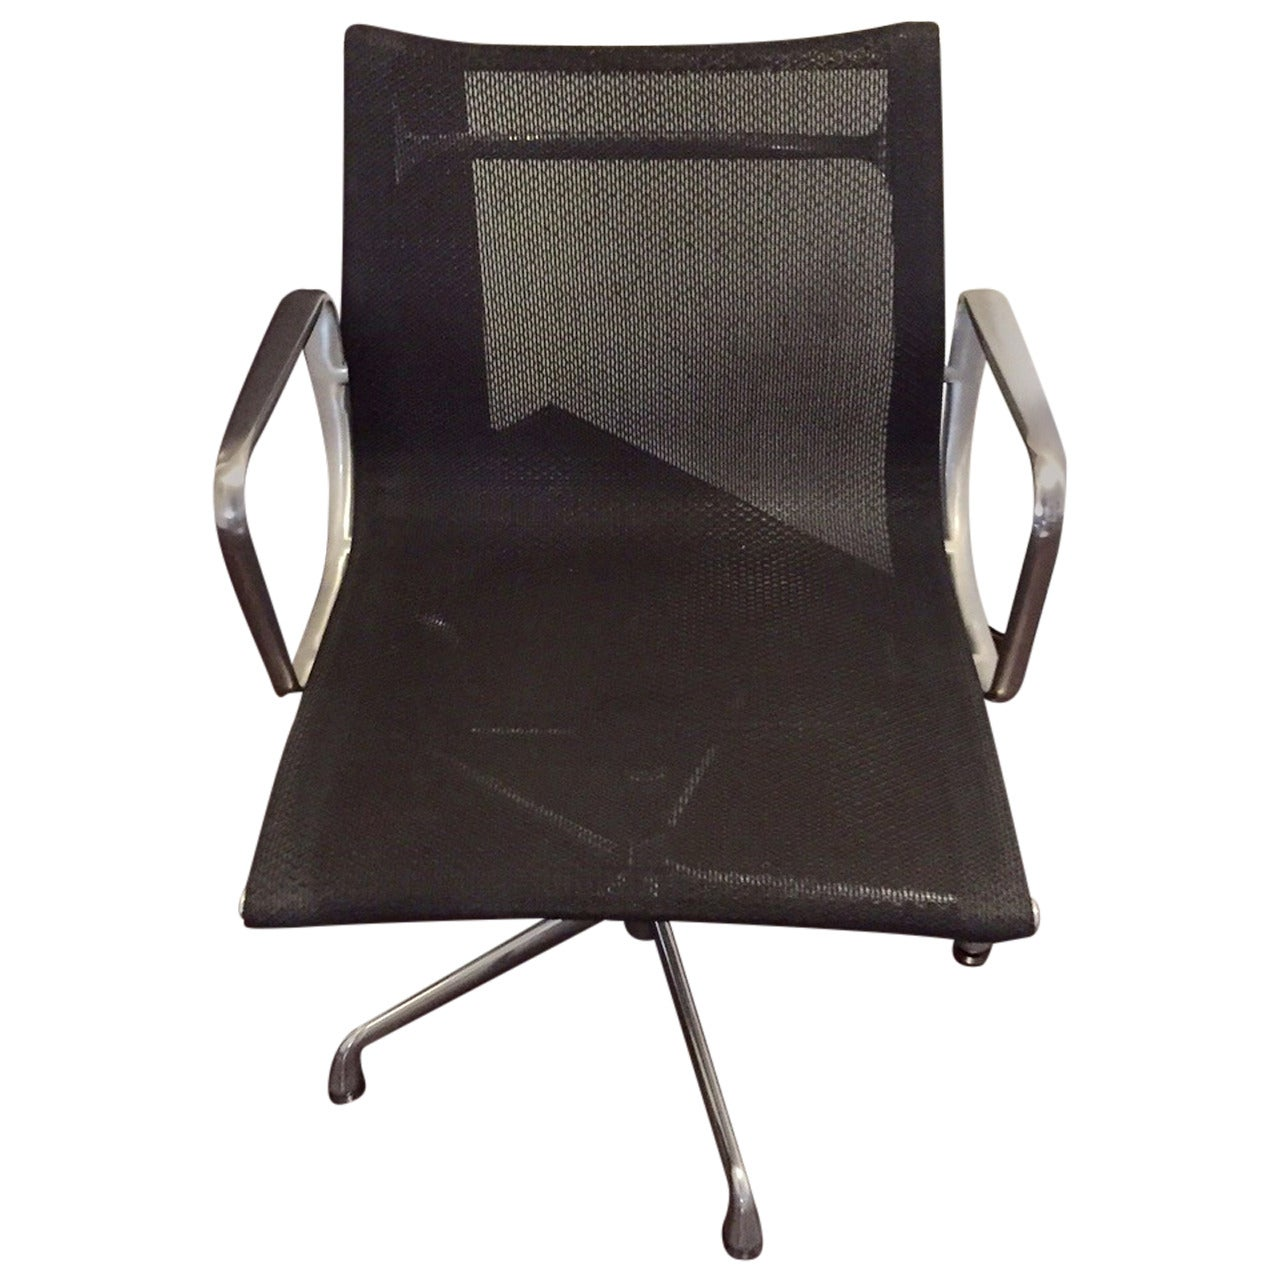 Eames Aluminum Group Management Chair by Herman Miller